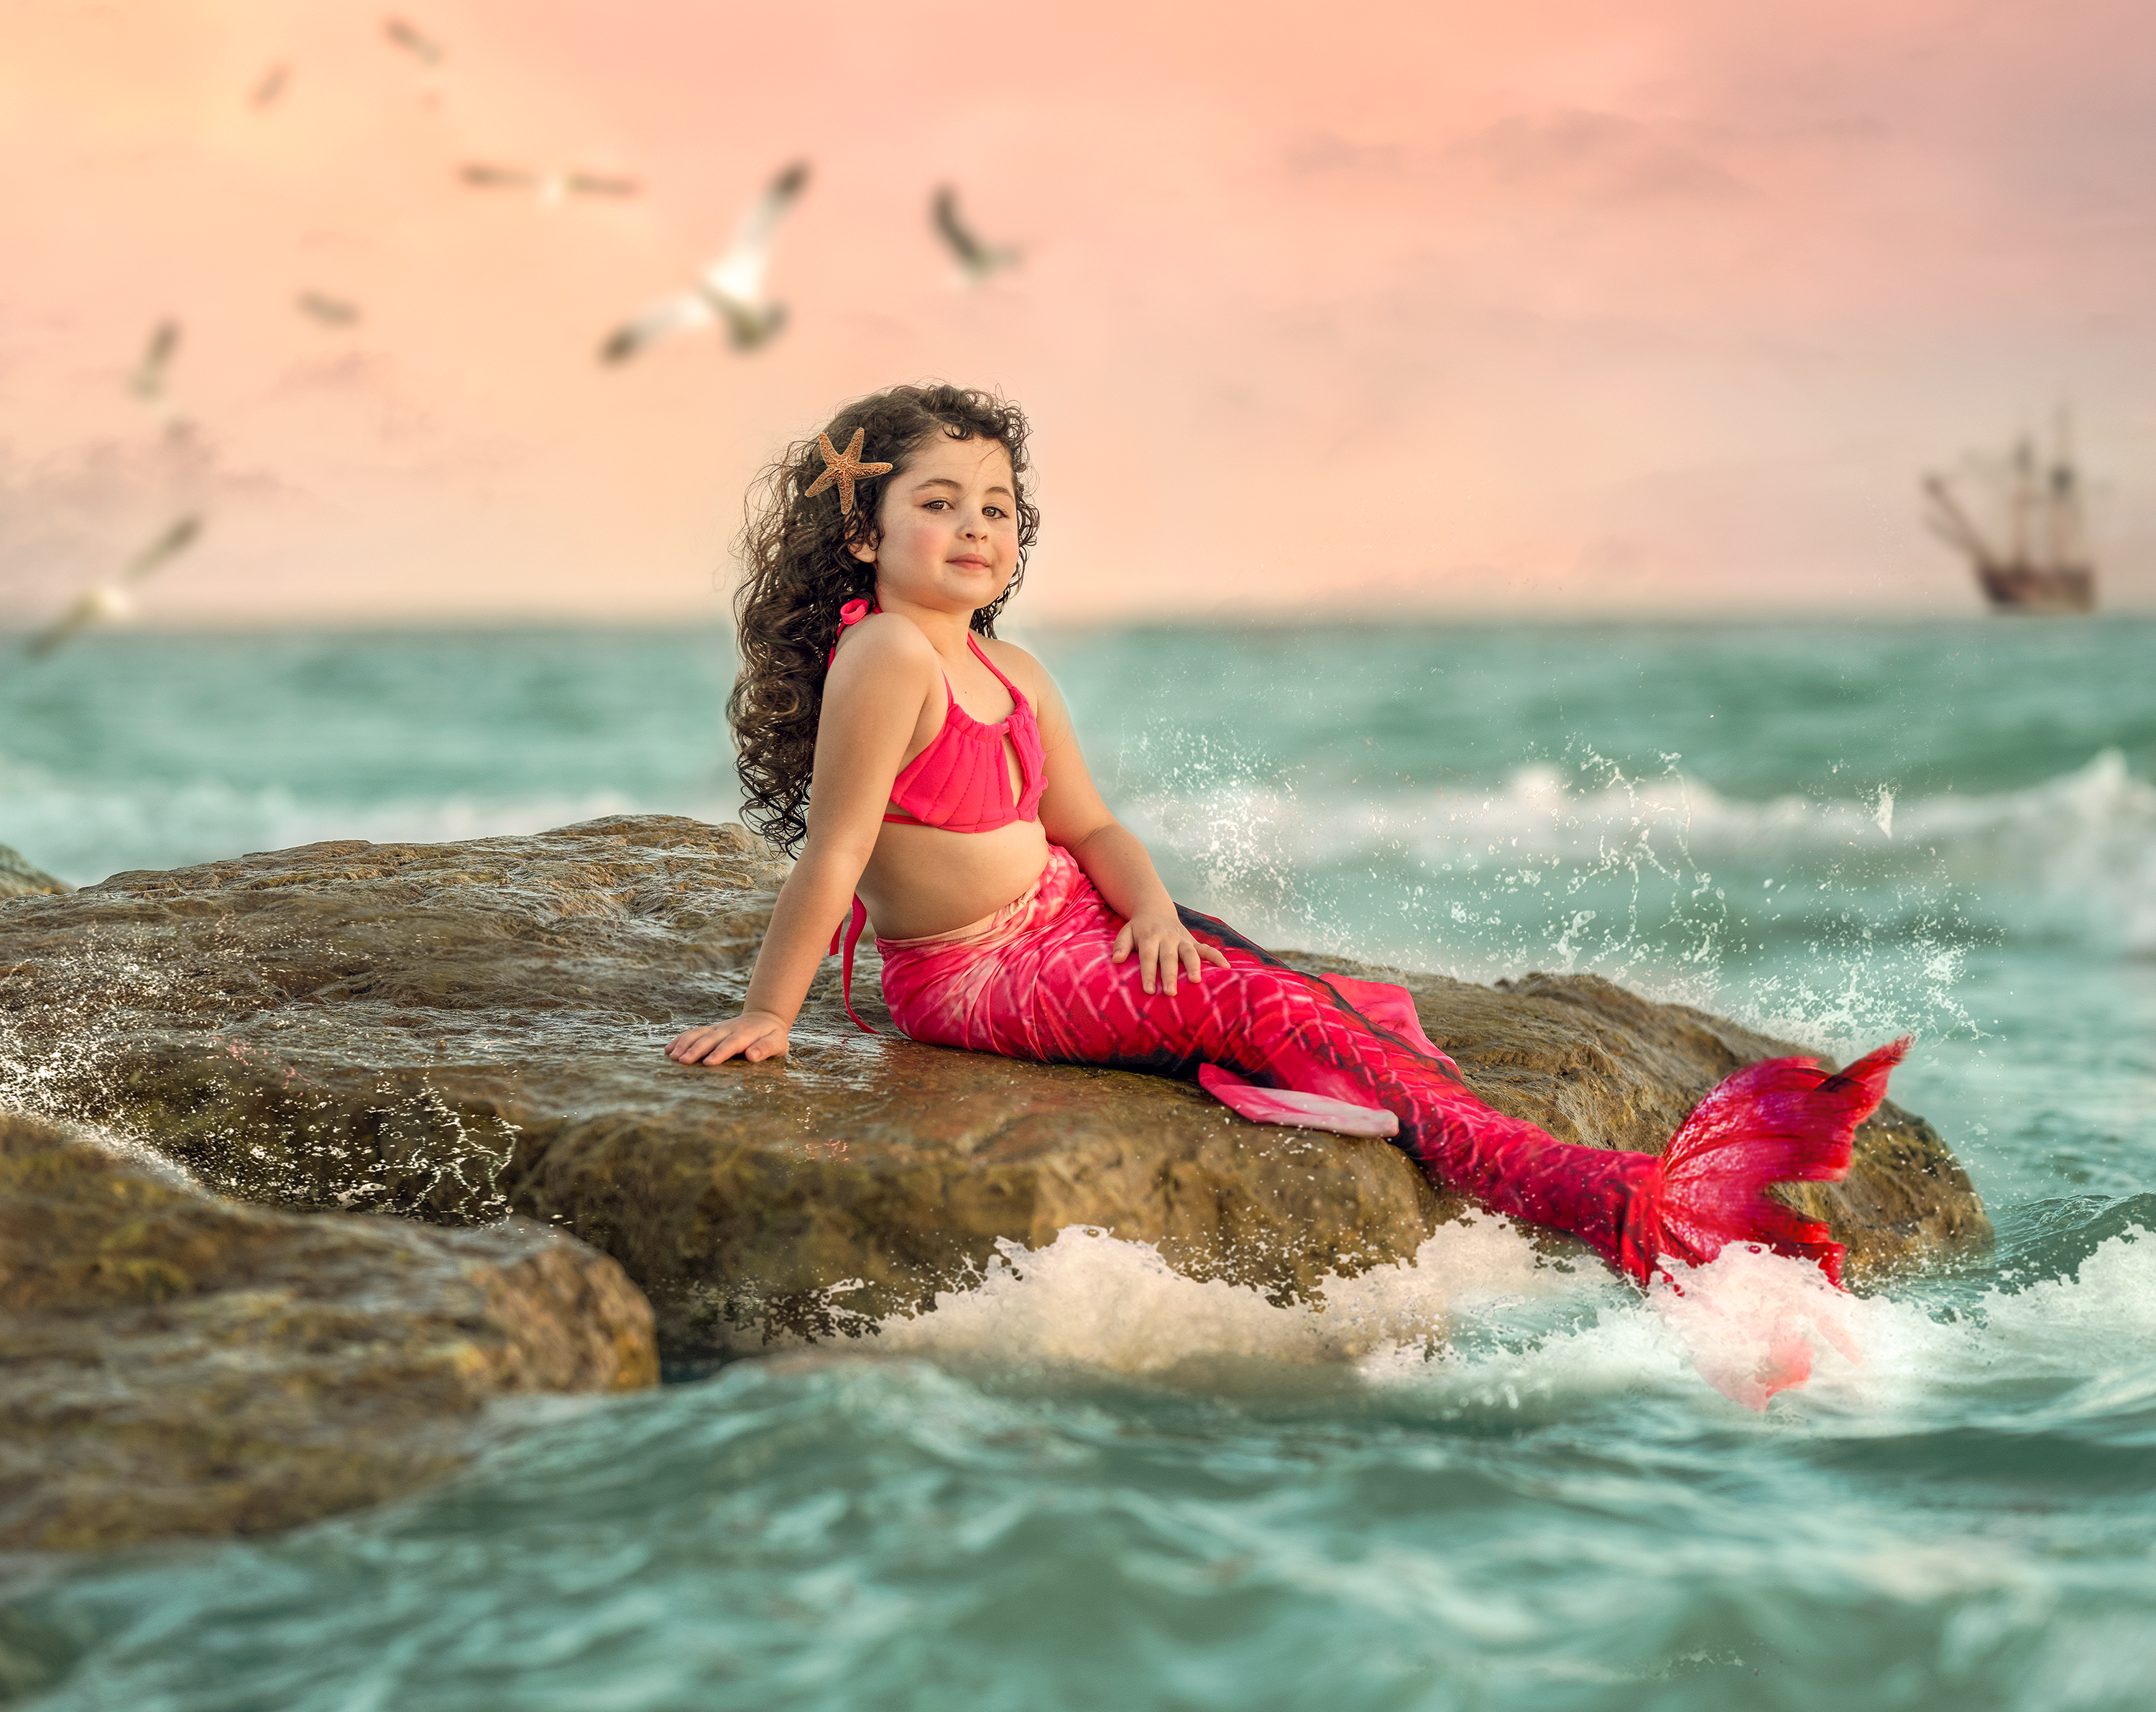 Little Mermaid Composite (MP4 video)